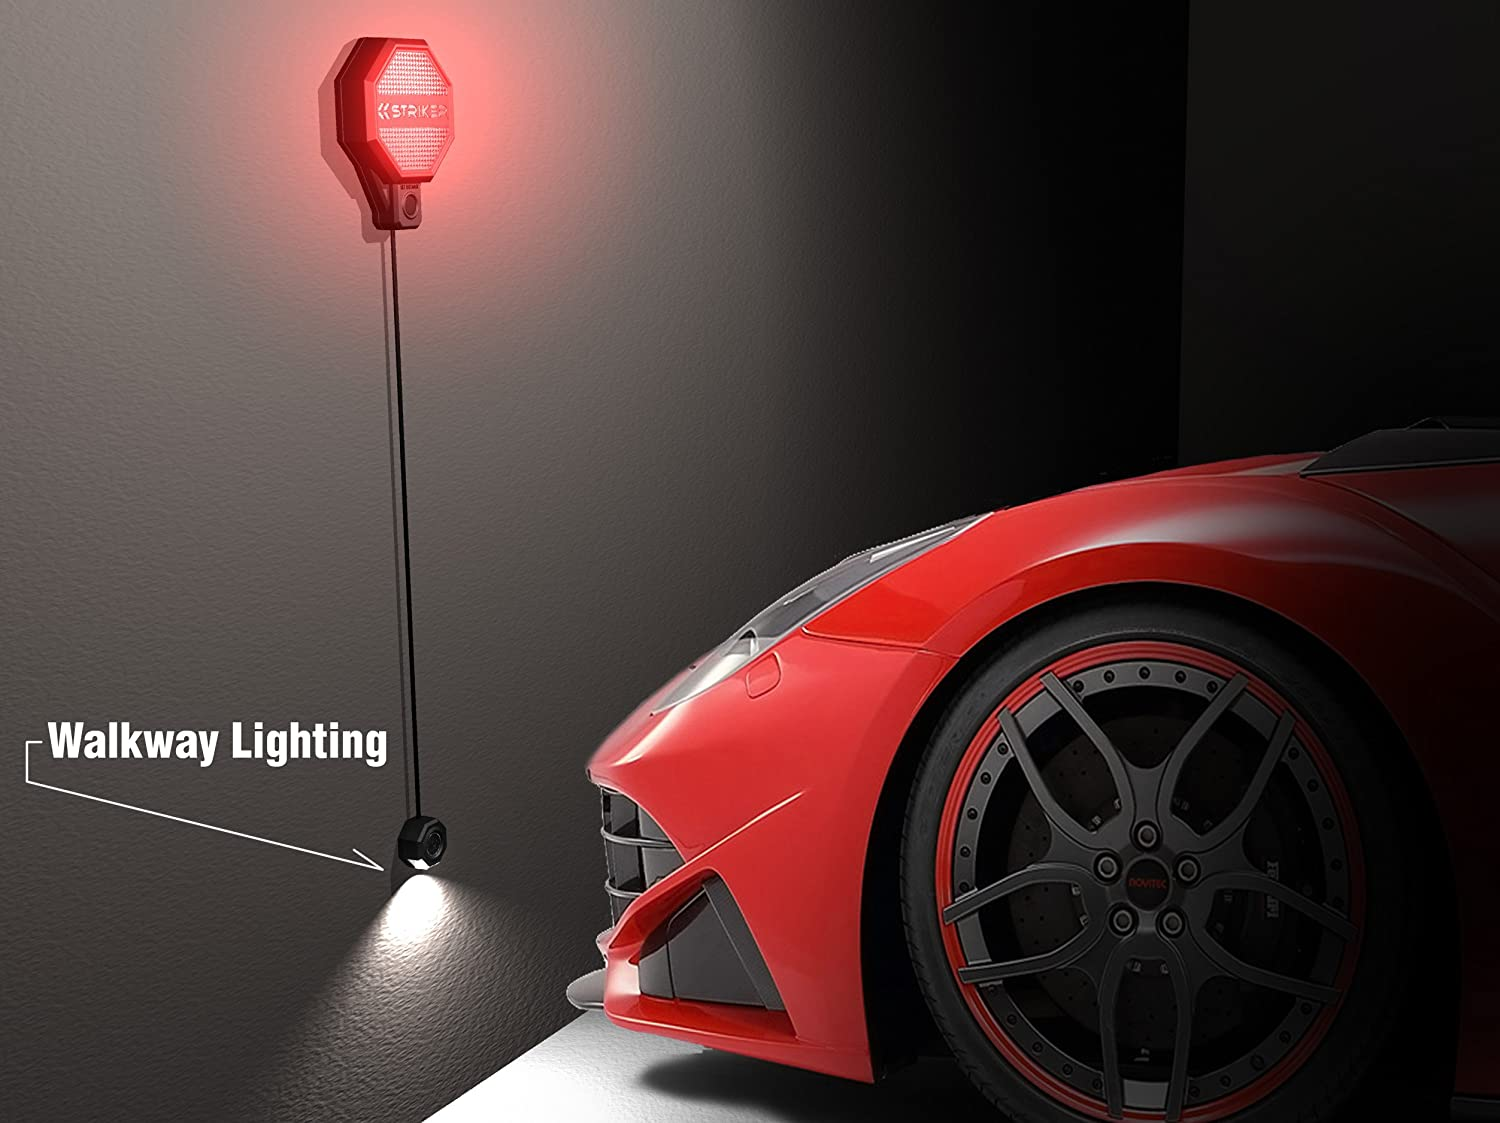 The 5 Best Parking Gadgets For Your Garage: Reviews & Buying Guide 4